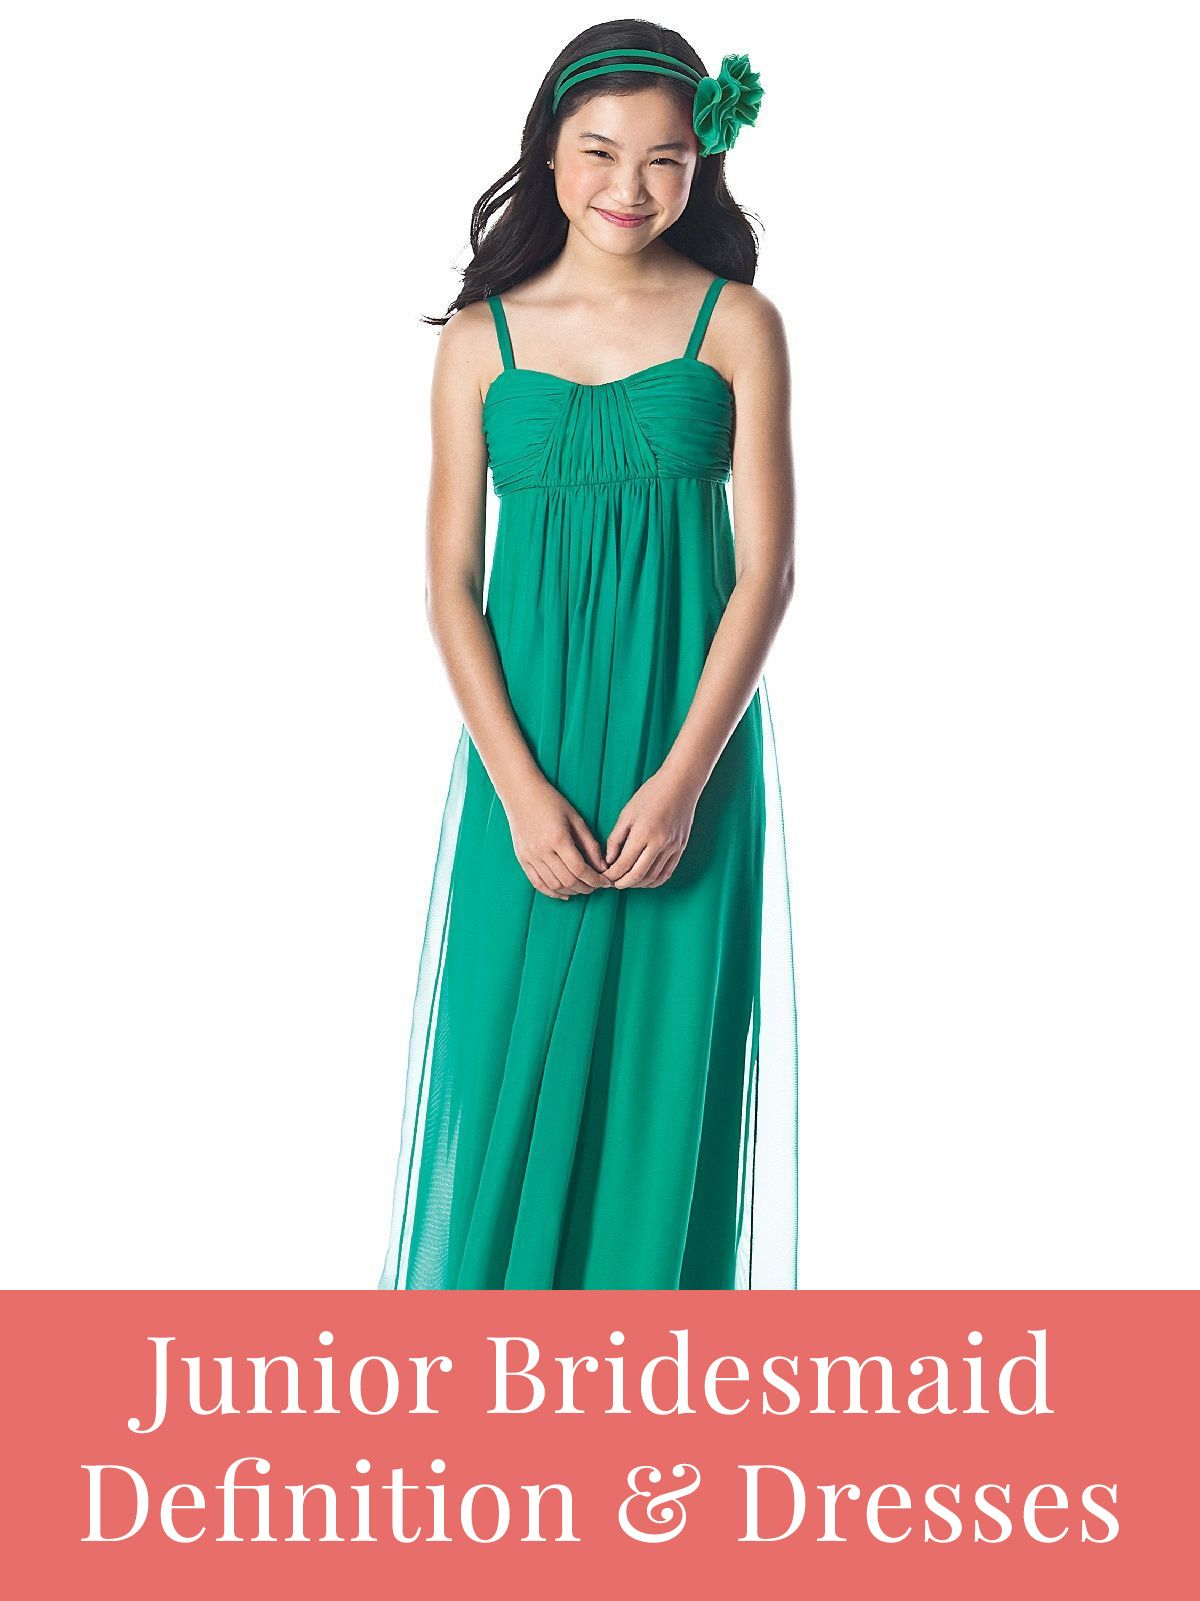 What is a Junior Bridesmaid? | Bridesmaid inspiration, Bridesmaid ...